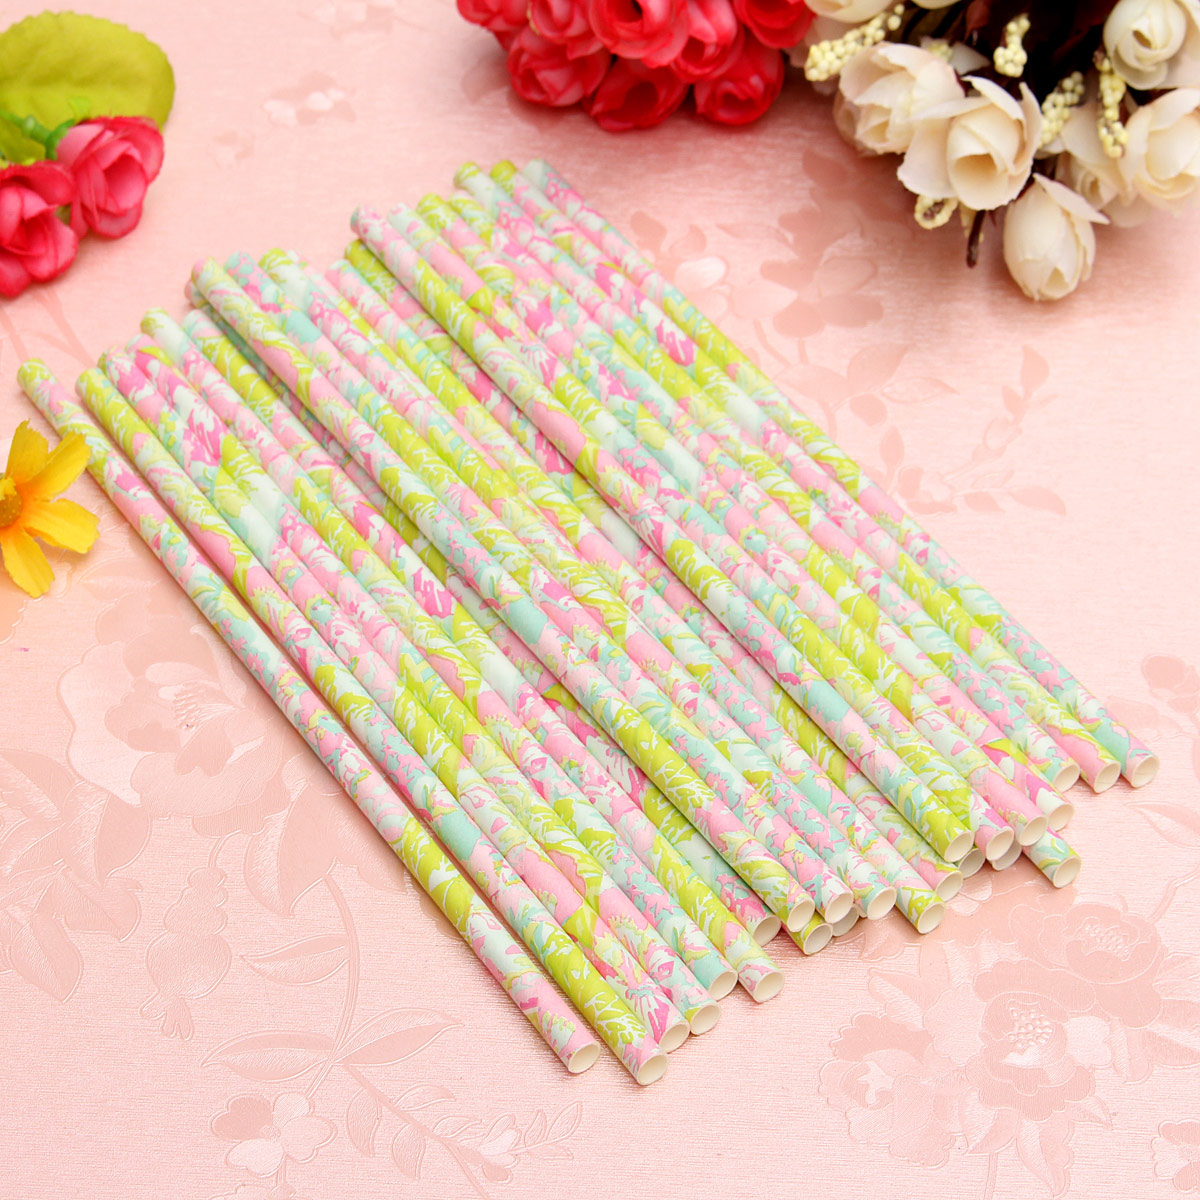 25Pcs Vintage Retro Paper Flower Floral Drinking Straws Birthday Wedding Party